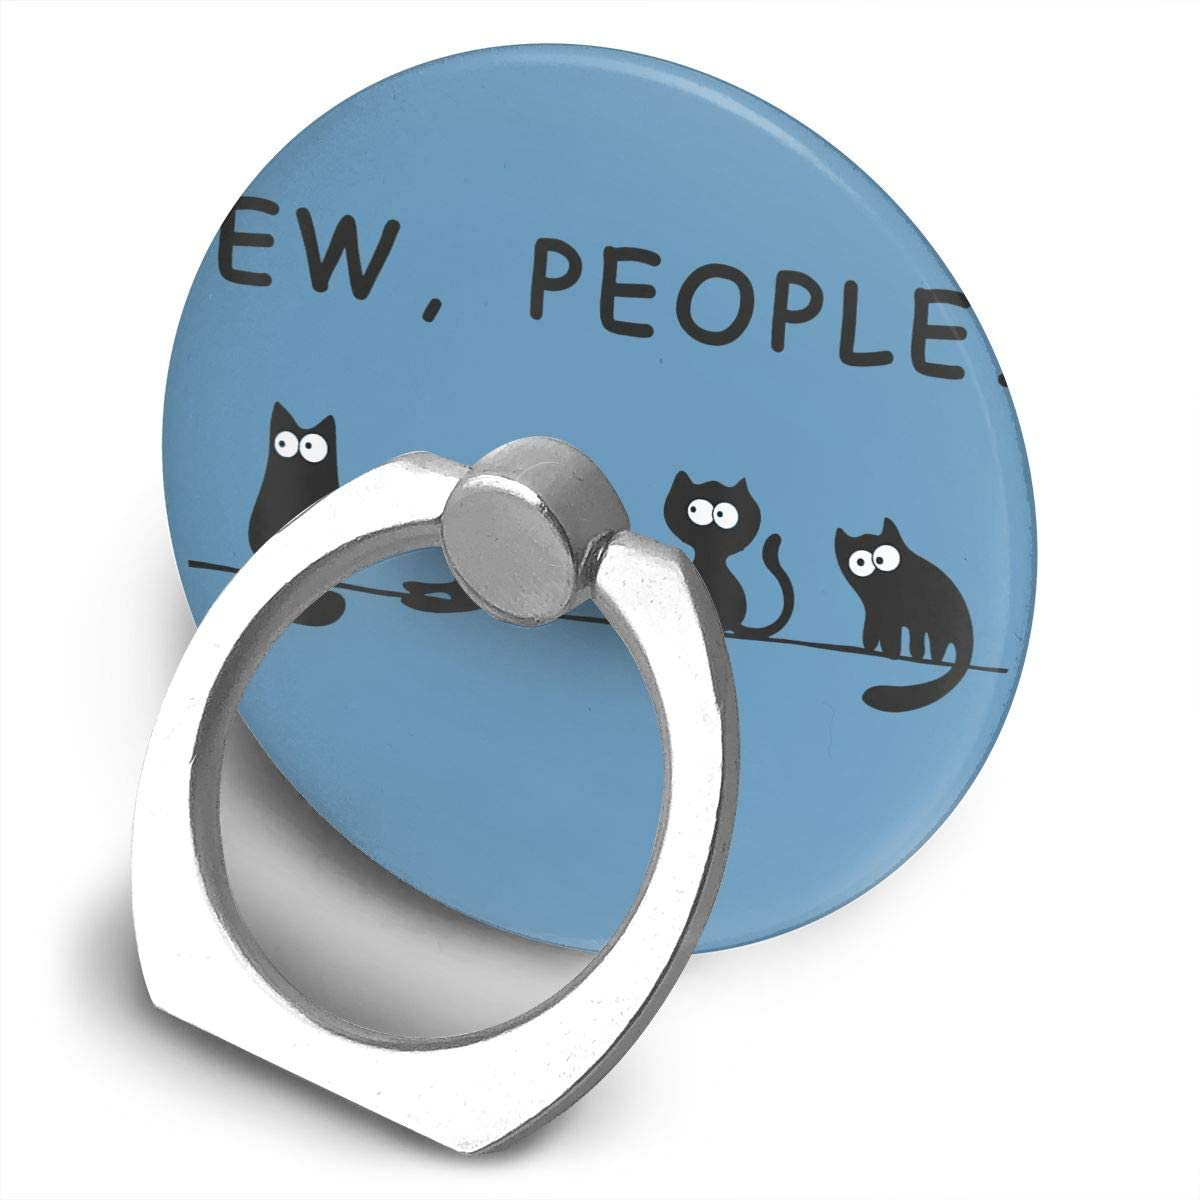 Zwinz Black Cat Funny Ew People Meowy Cat Lovers Alloy Mobile Phone Ring Bracket,360 Degree Rotating Ring Stand Grip Mounts